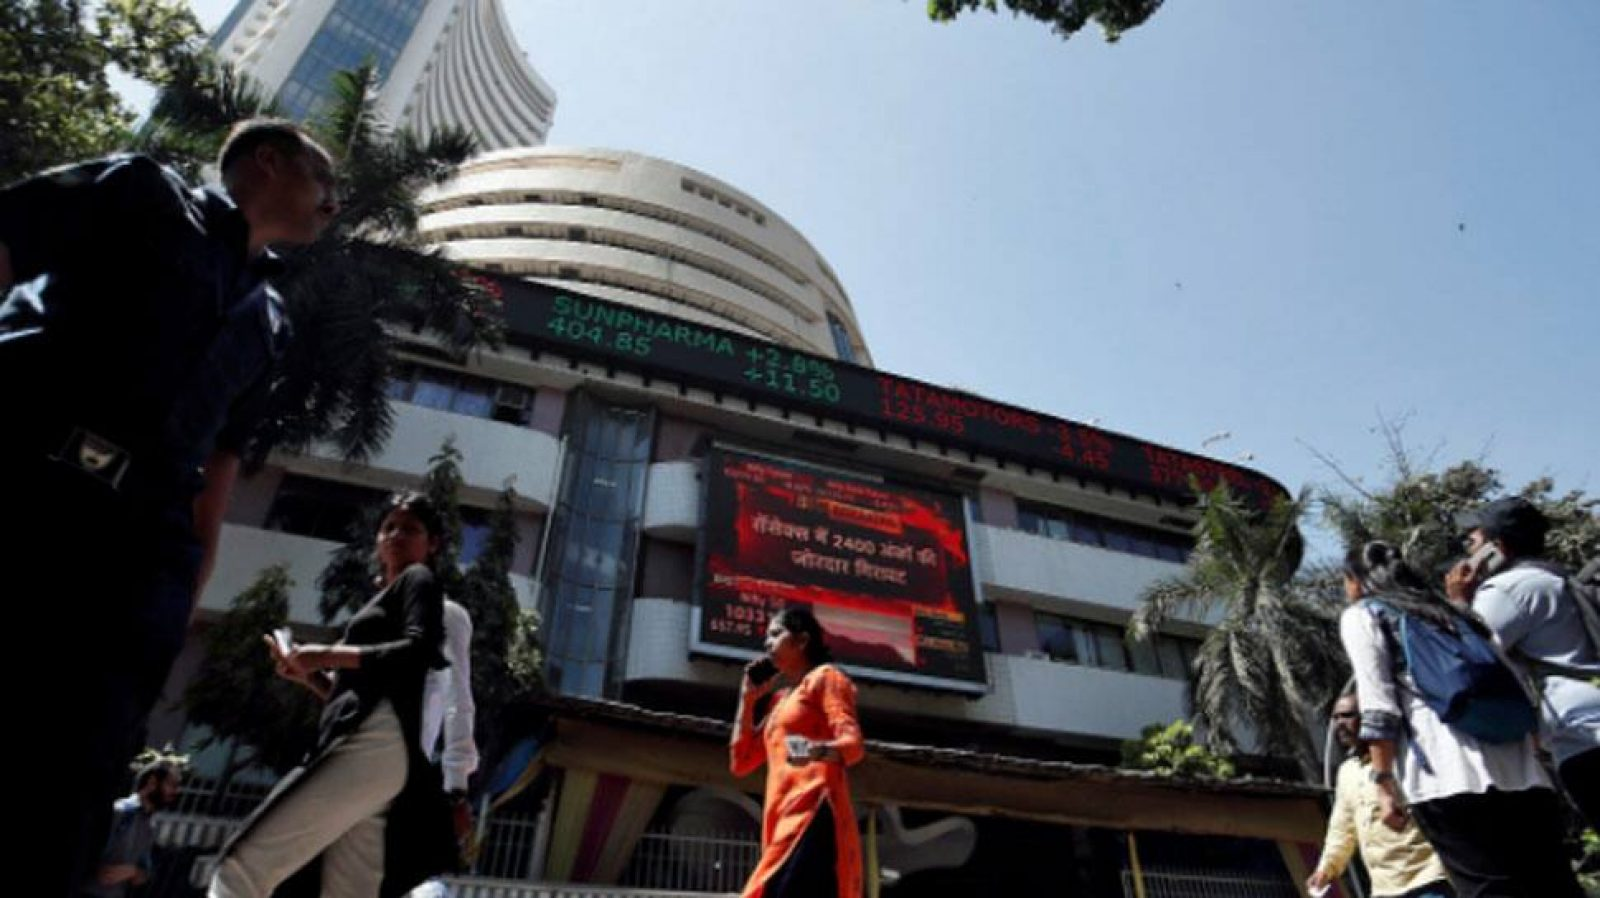 Sensex soars 460 points in late morning trade, Nifty rises above 11,800